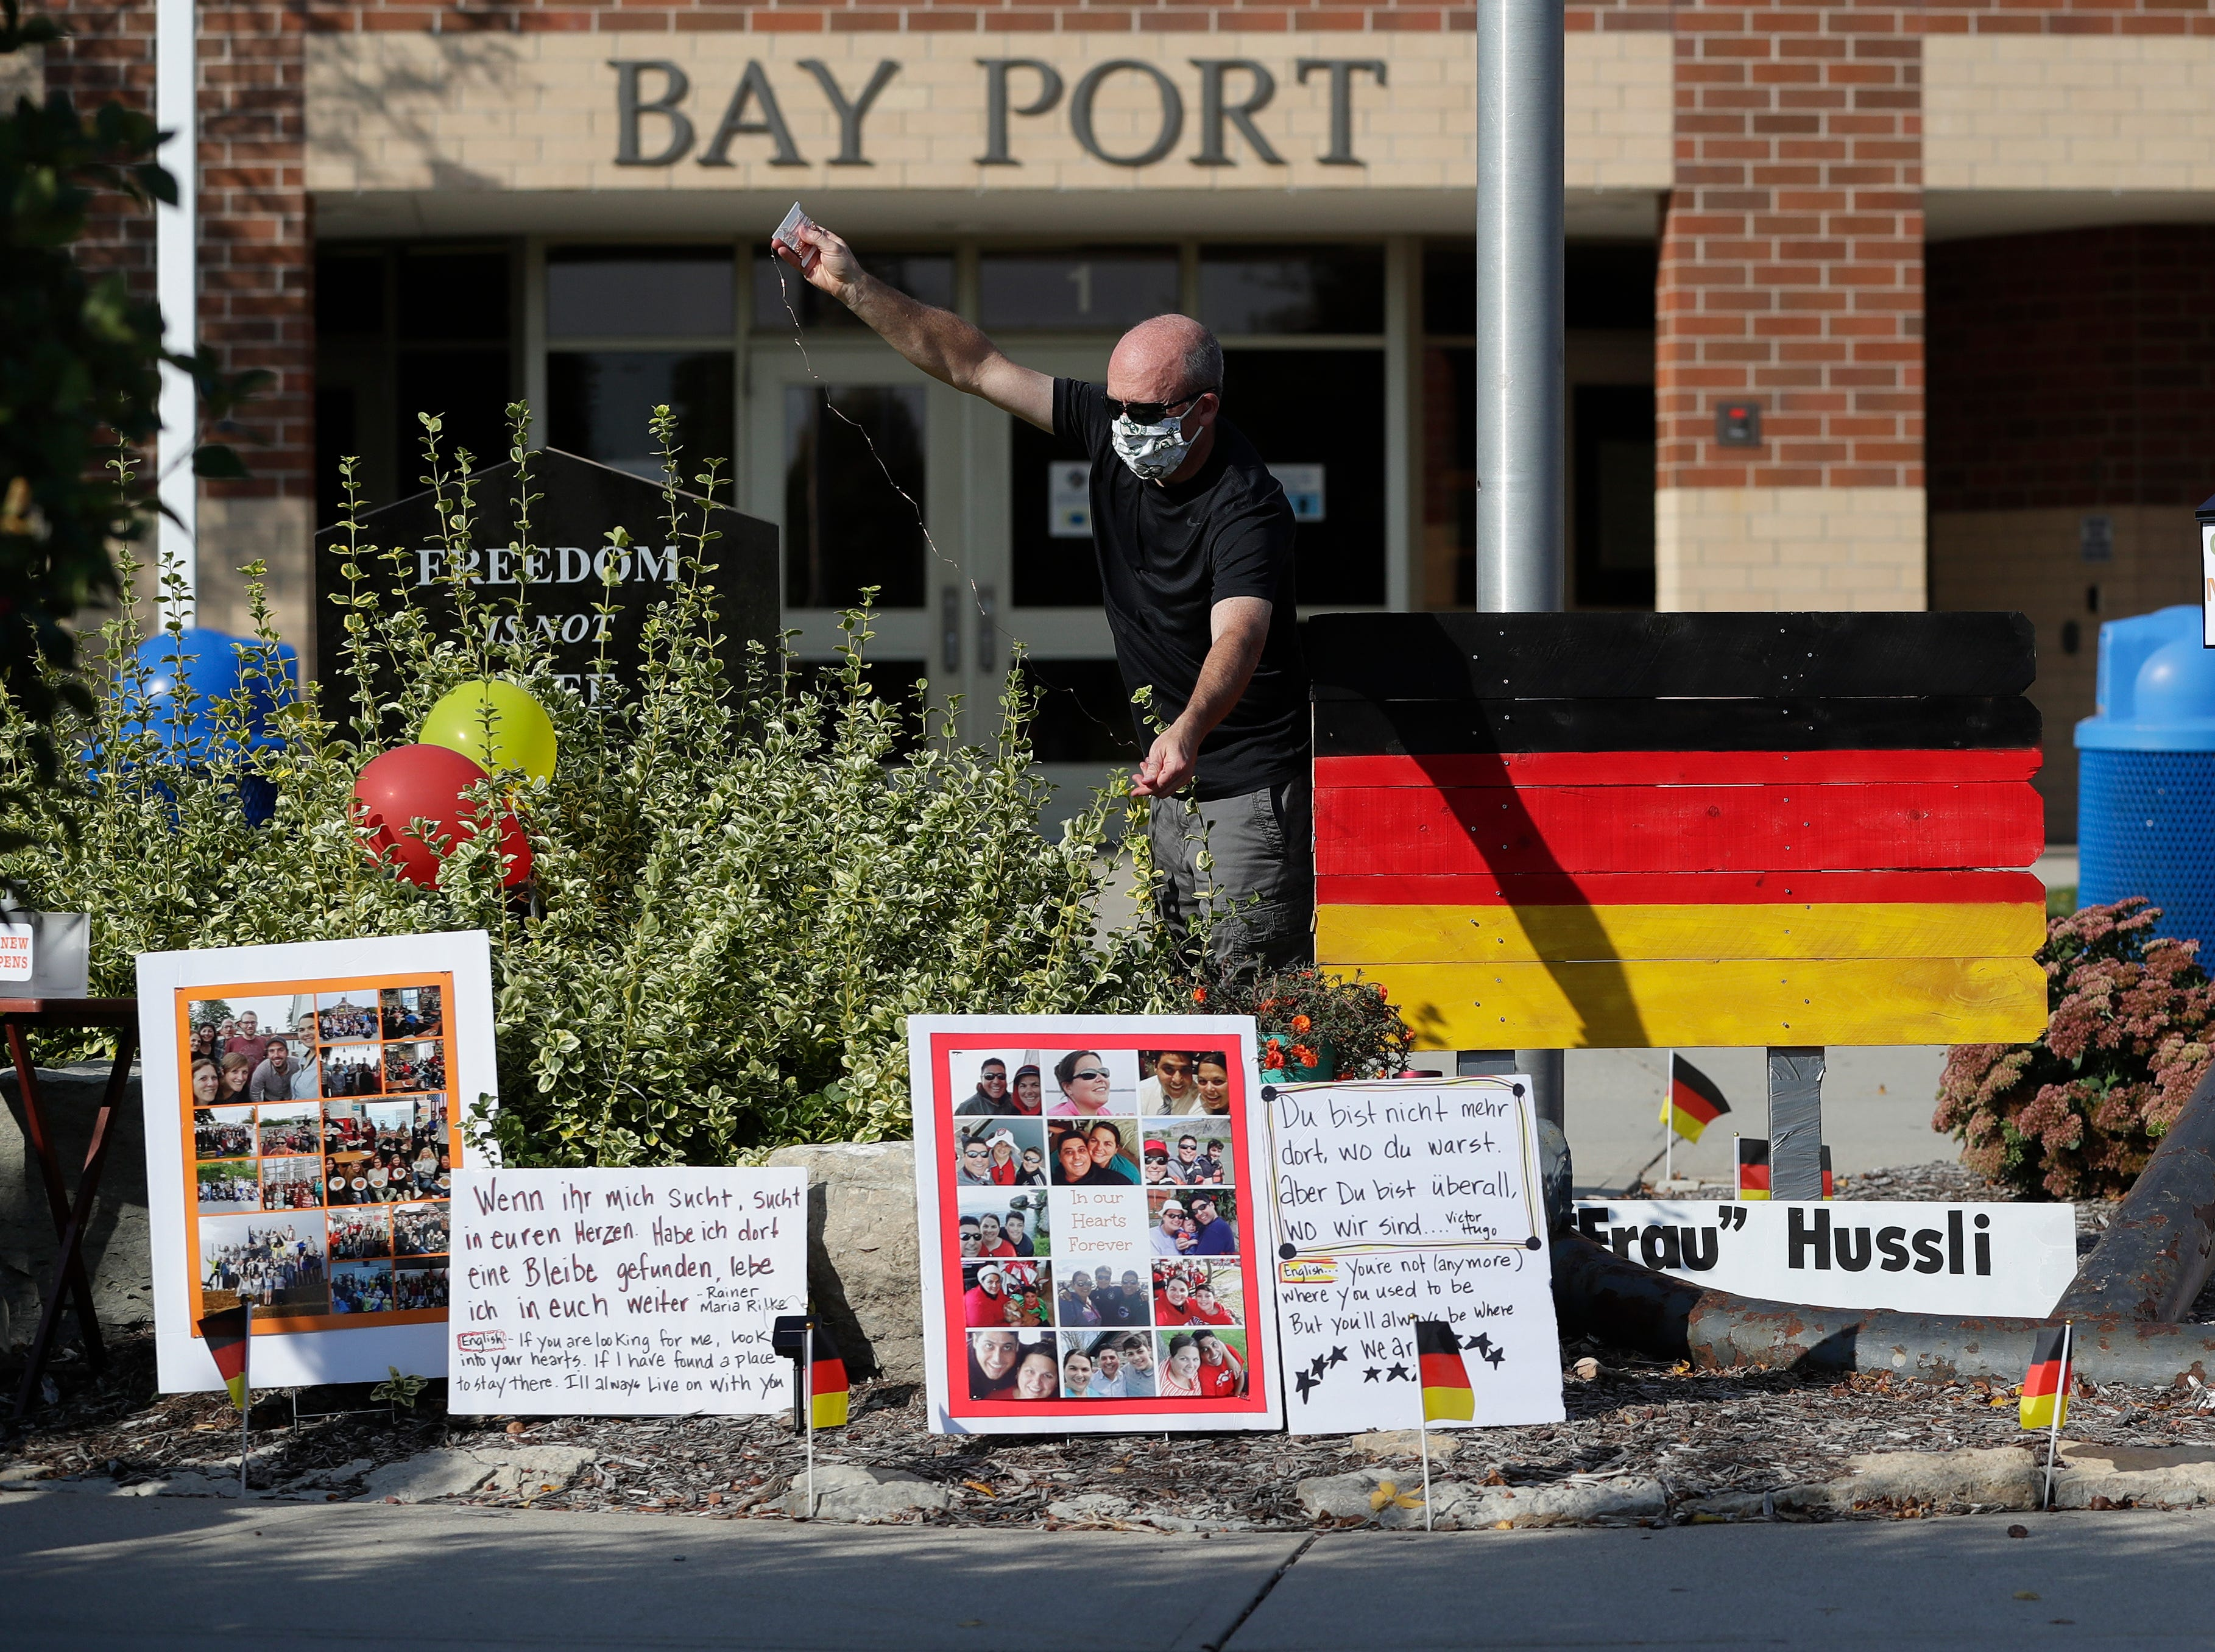 Family and friends set up a memorial outside Bay Port High School on Friday for Heidi Hussli, a German teacher who died from COVID-19 on Sept. 17, 2020.